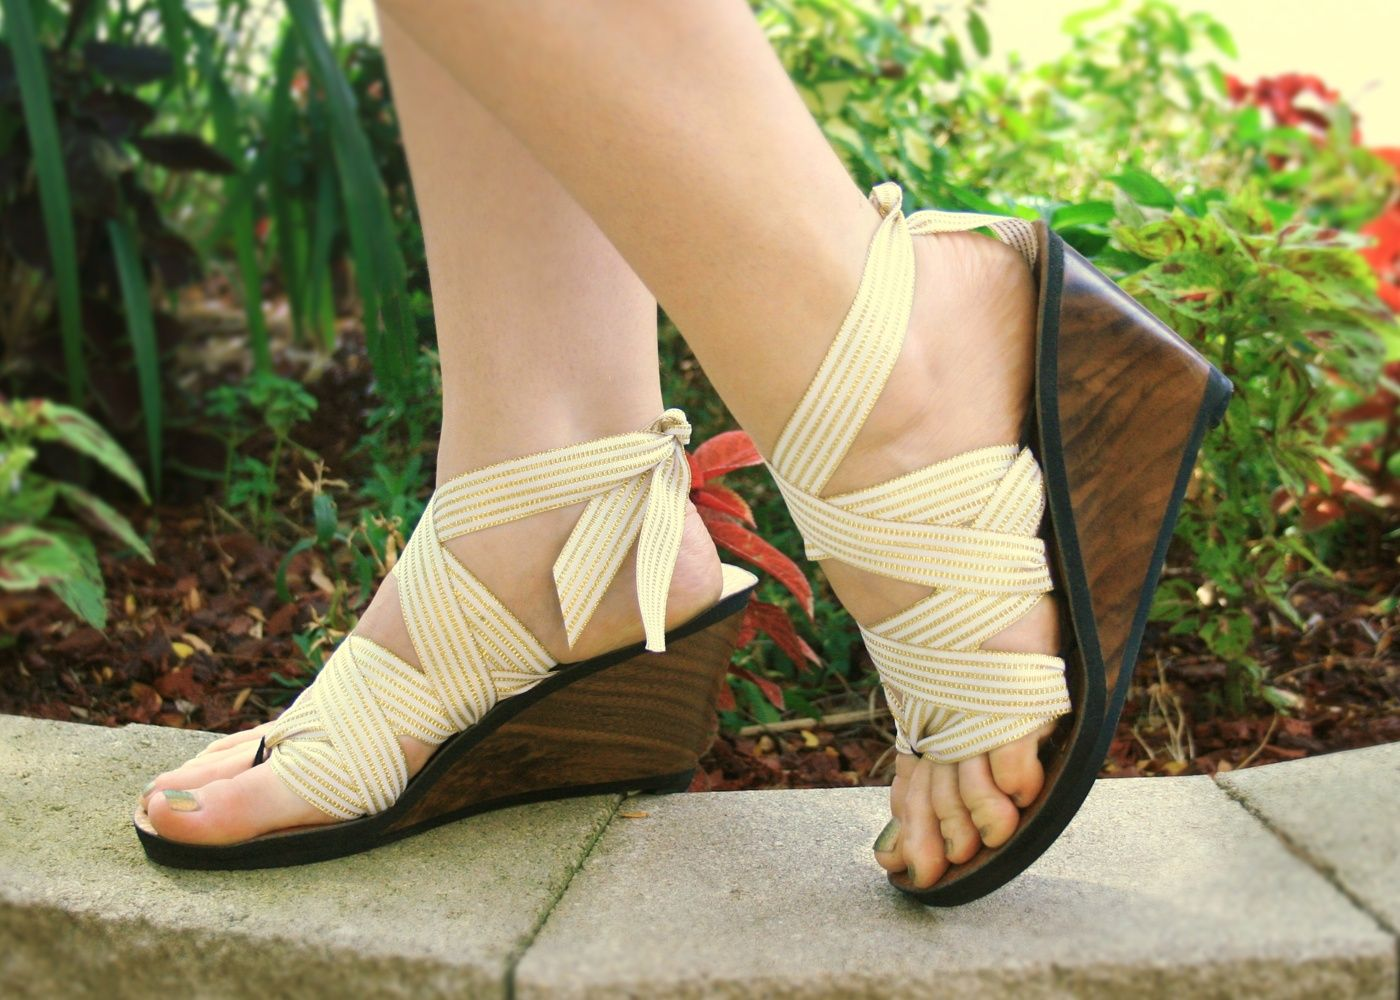 388f0f3cb1be1 High Walnut thong sandals. Carved from sustainably sourced walnut and come  with 5 sets of interchangeable ribbons. Eco-friendly